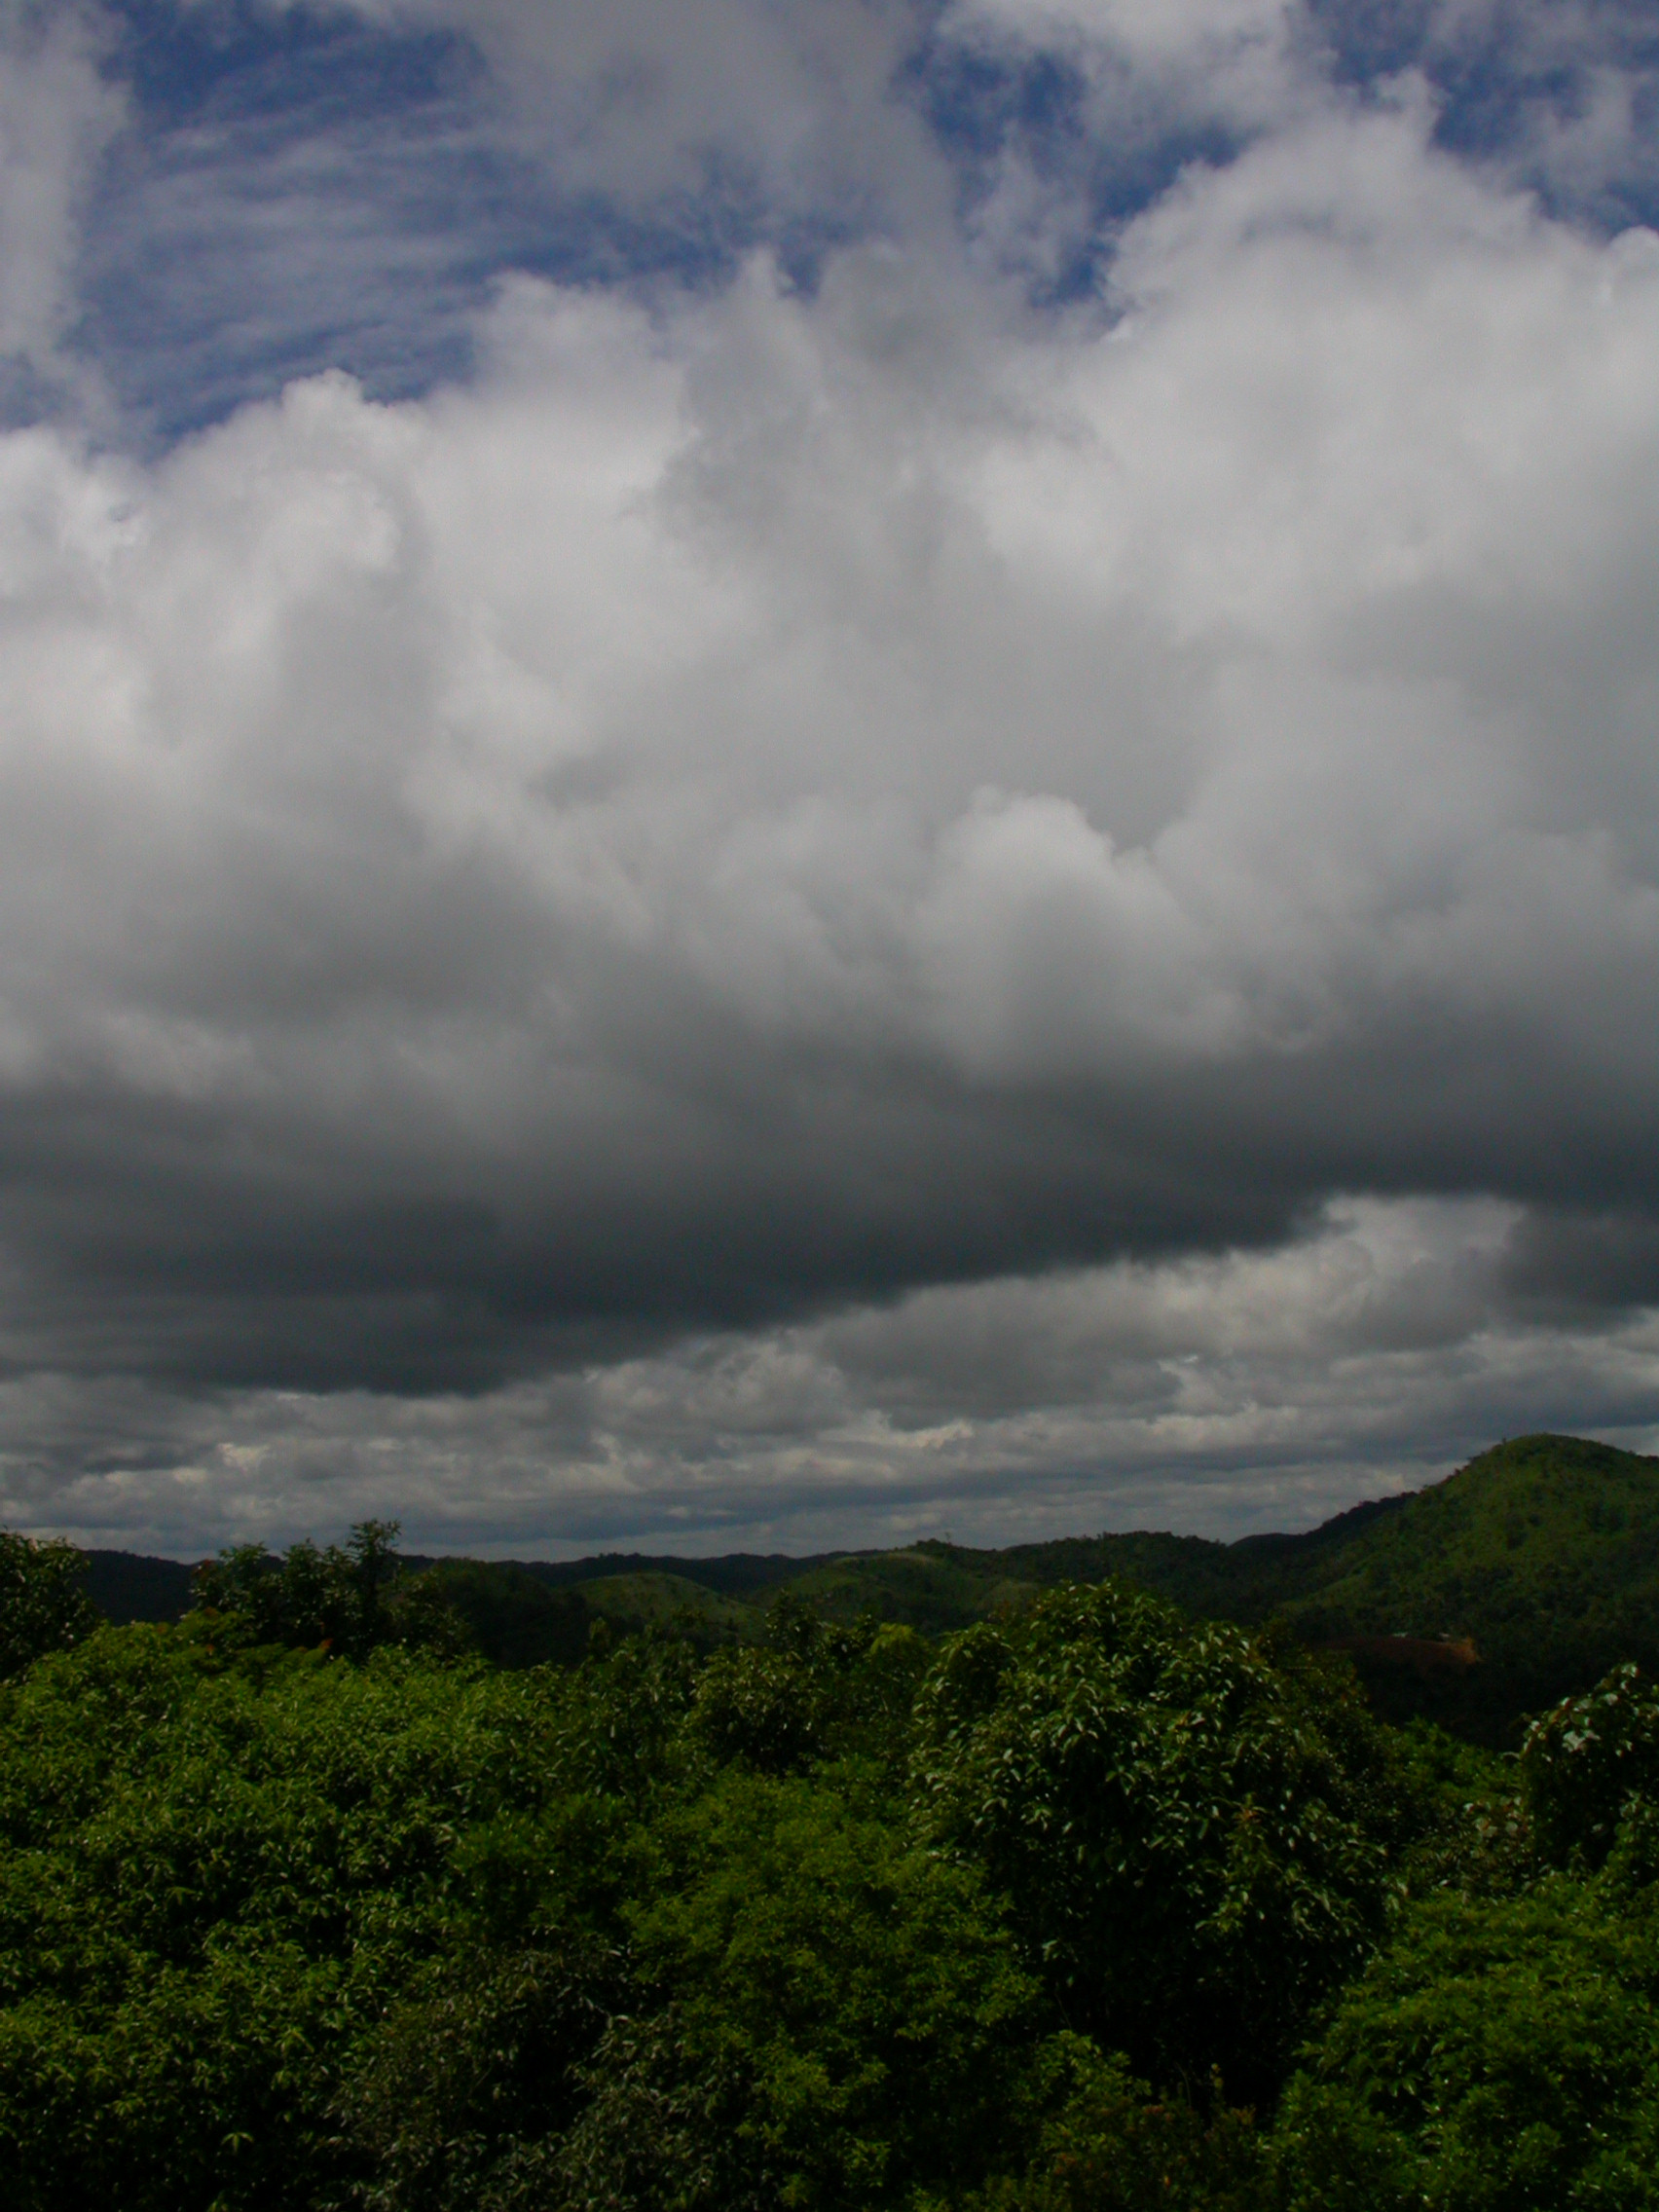 Monsoon clouds over Gurukula. Photo credit: Gurukula Botanical Sanctuary Archives